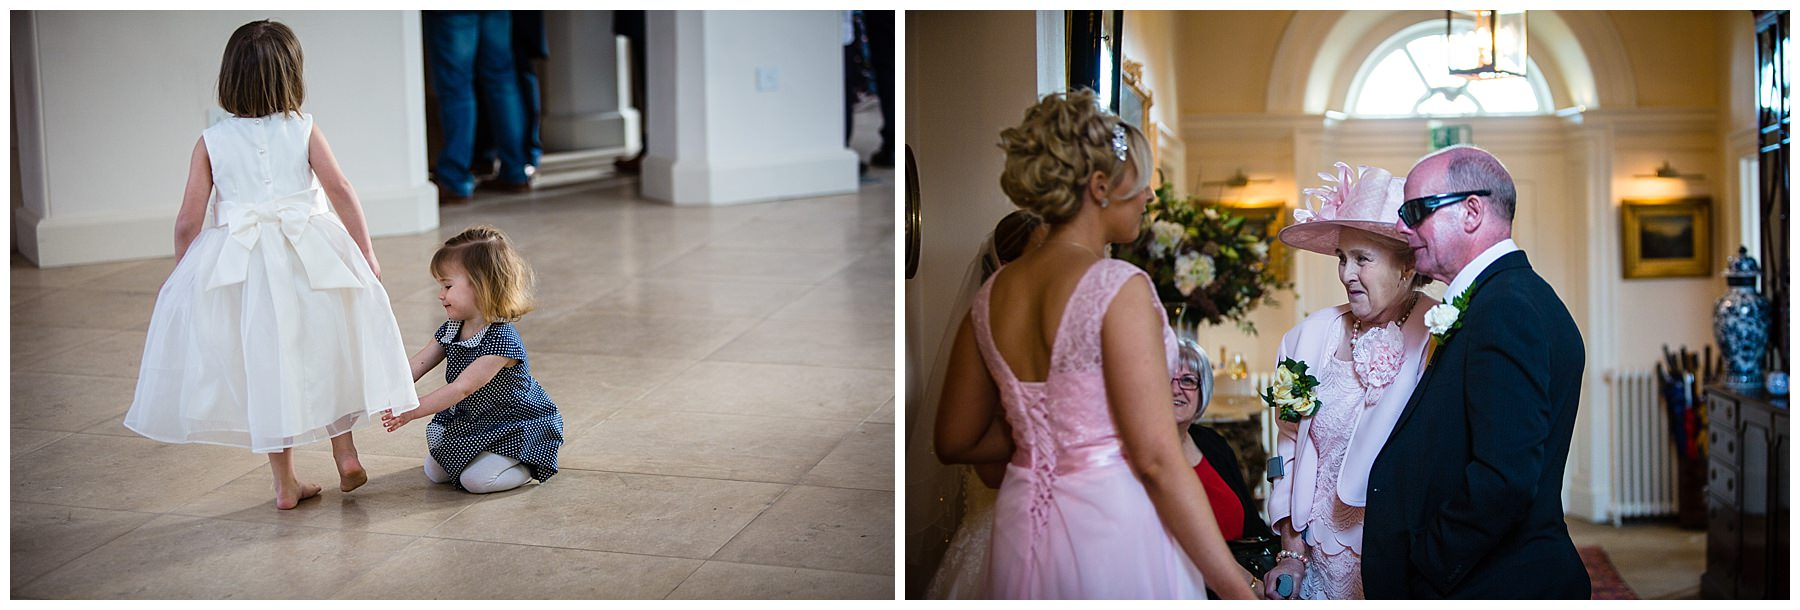 little girl adjusting flower girls dress and mother of the bride giggling with guests at iscoyd park wedding